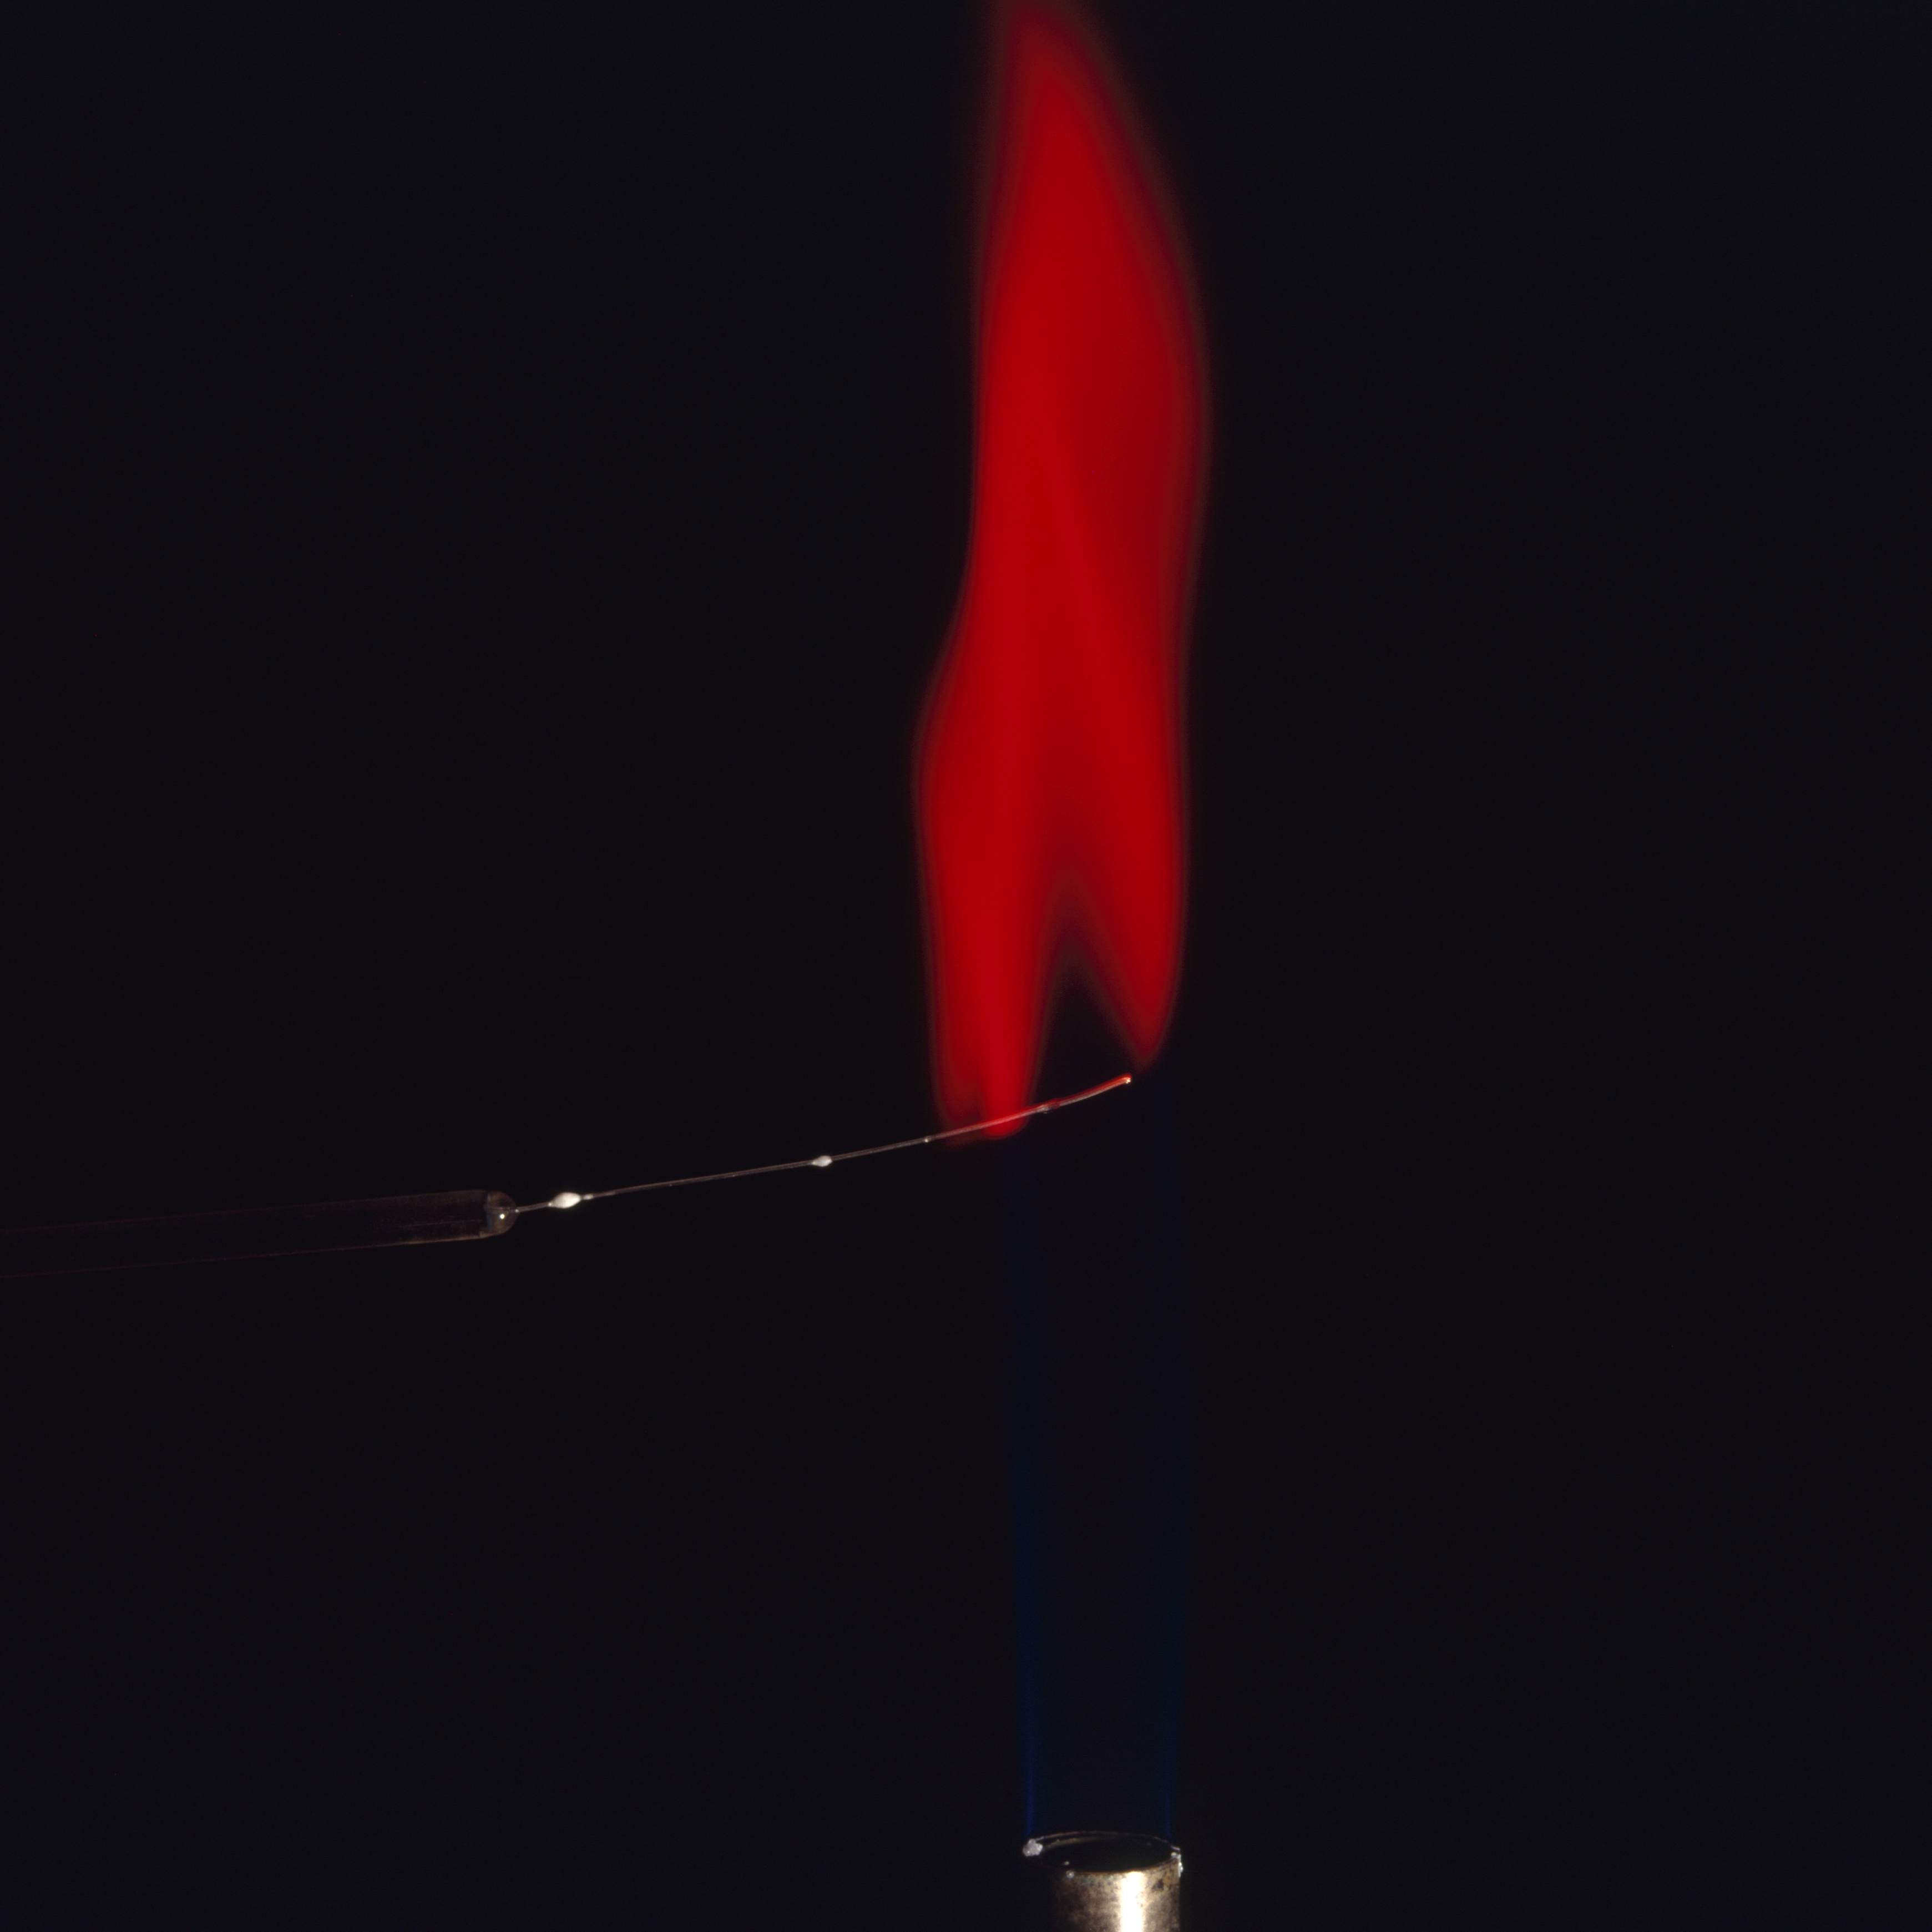 Strontium compounds turn a flame red